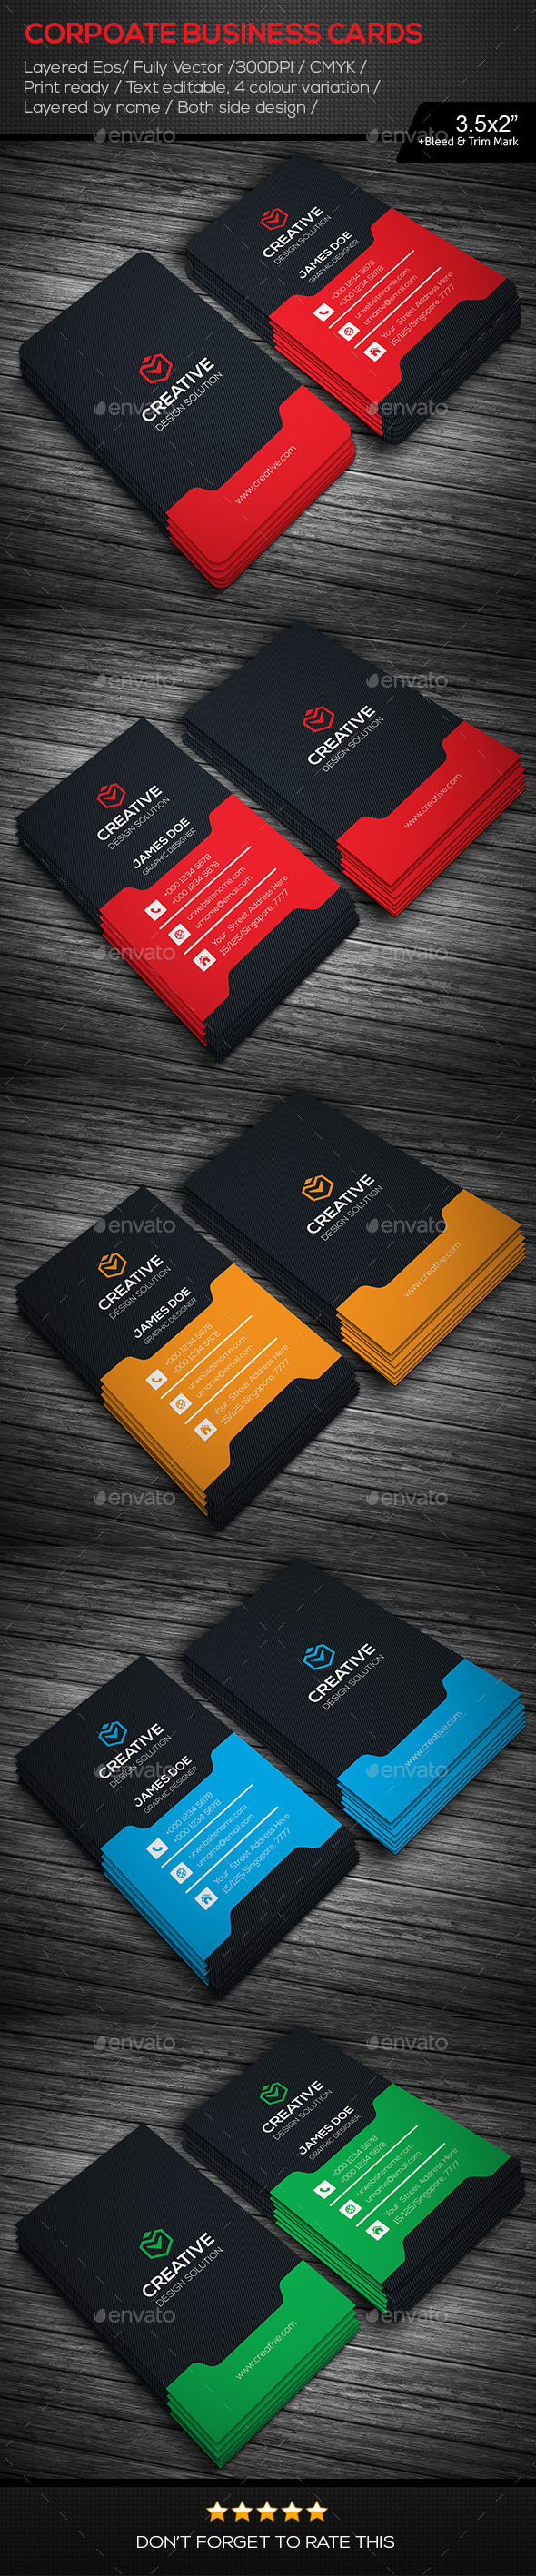 GraphicRiver Creative Corporate Business Cards 11171115